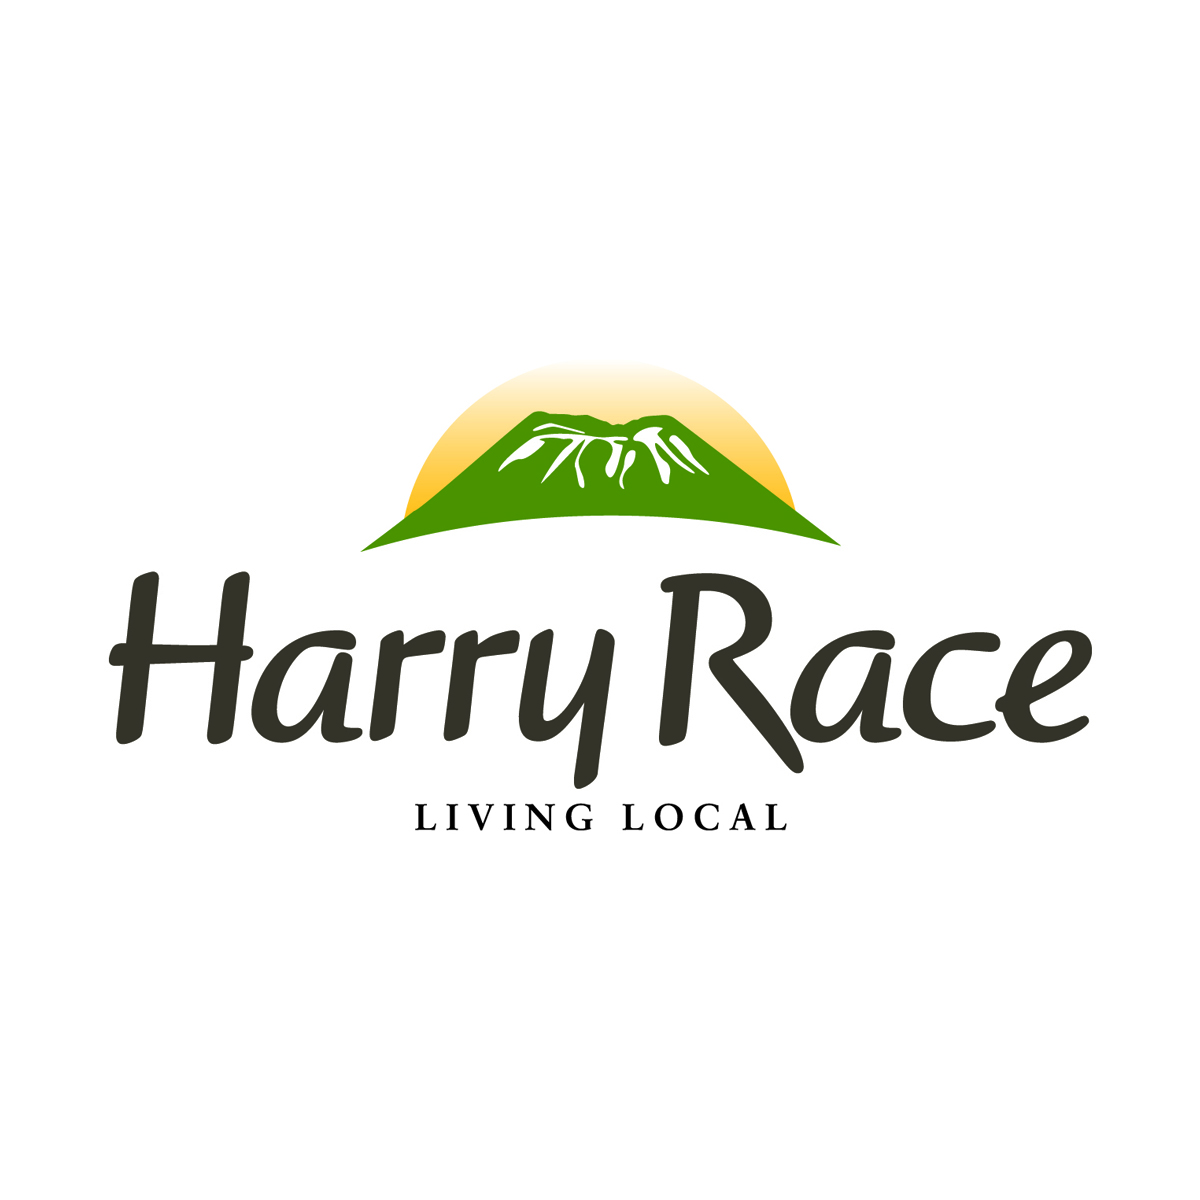 Harry race logo.jpg